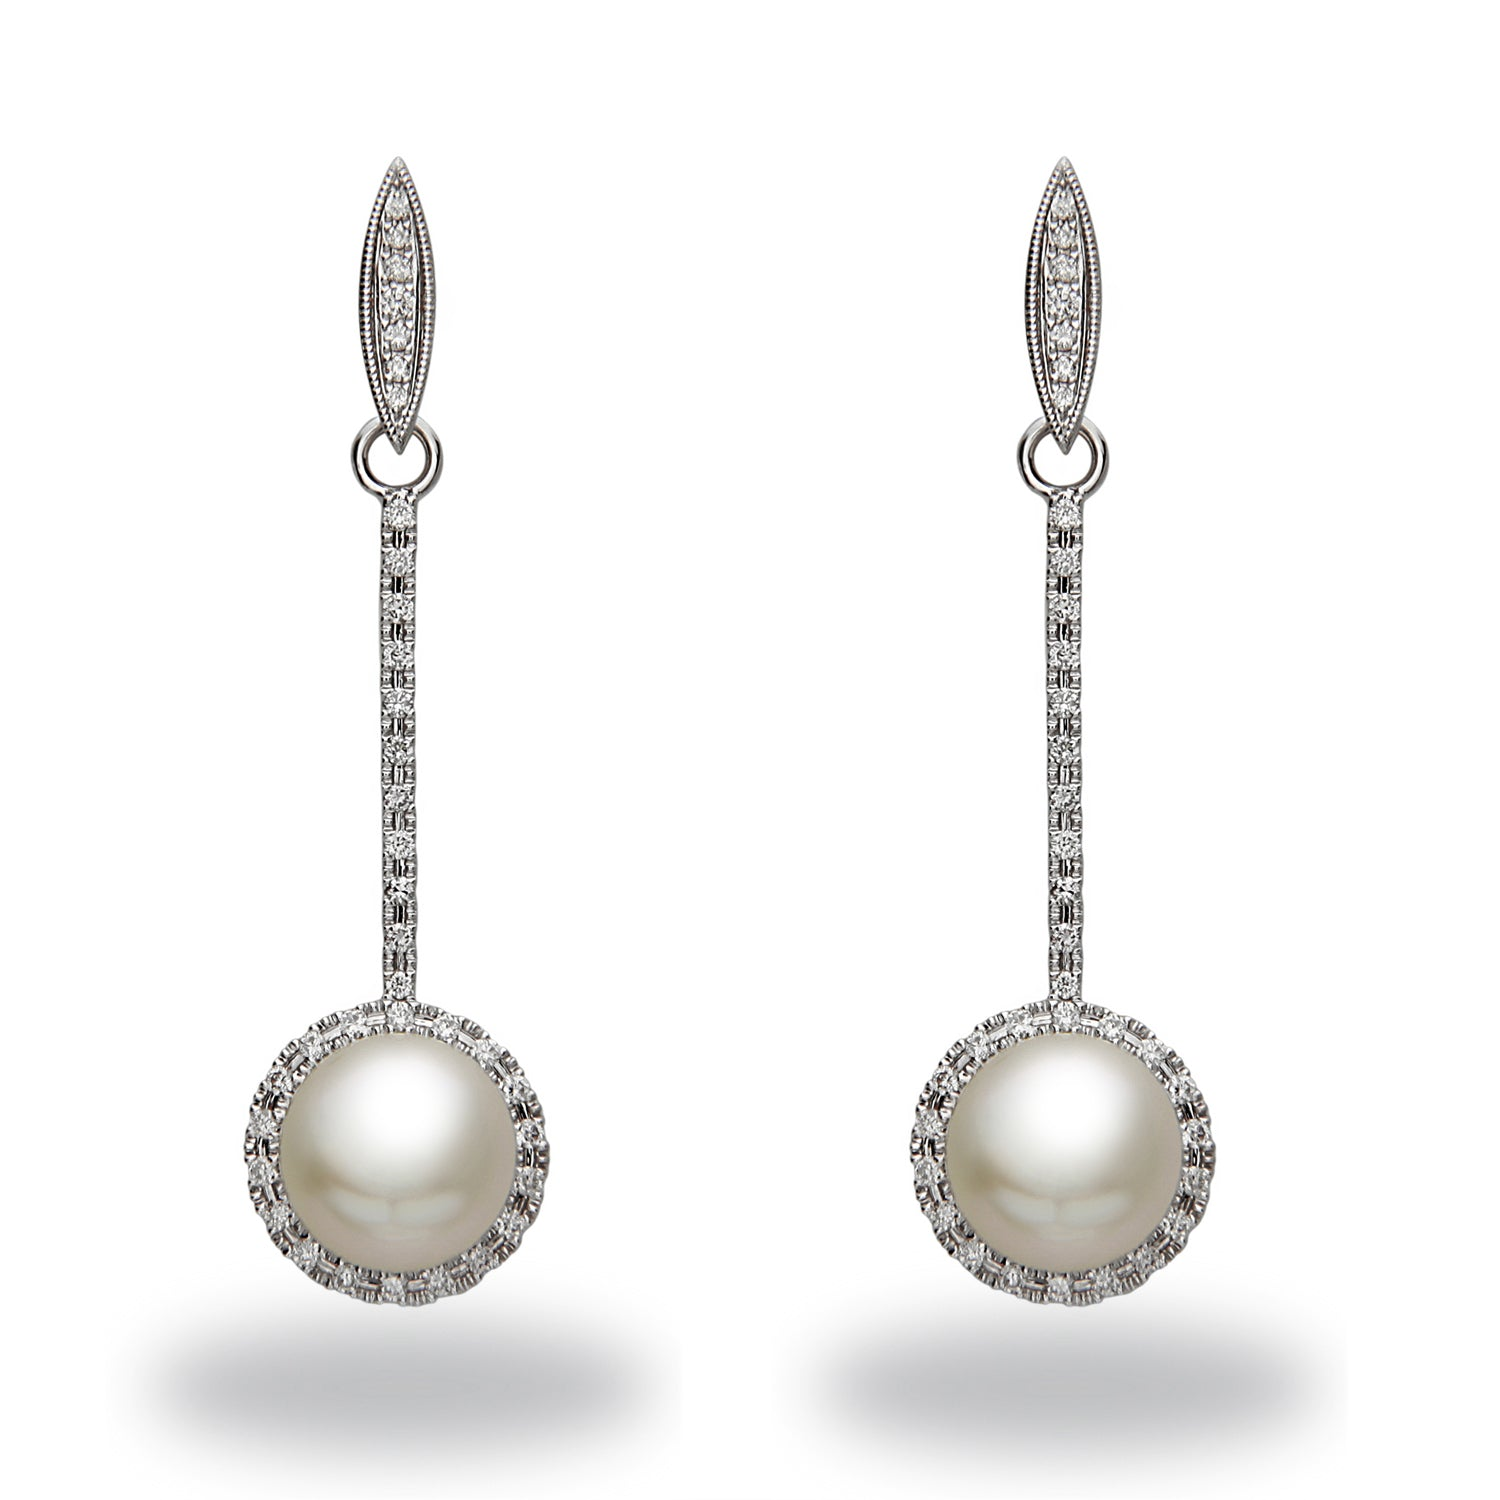 Chandelier 10x11mm White South Sea Pearl and Diamond Earrings